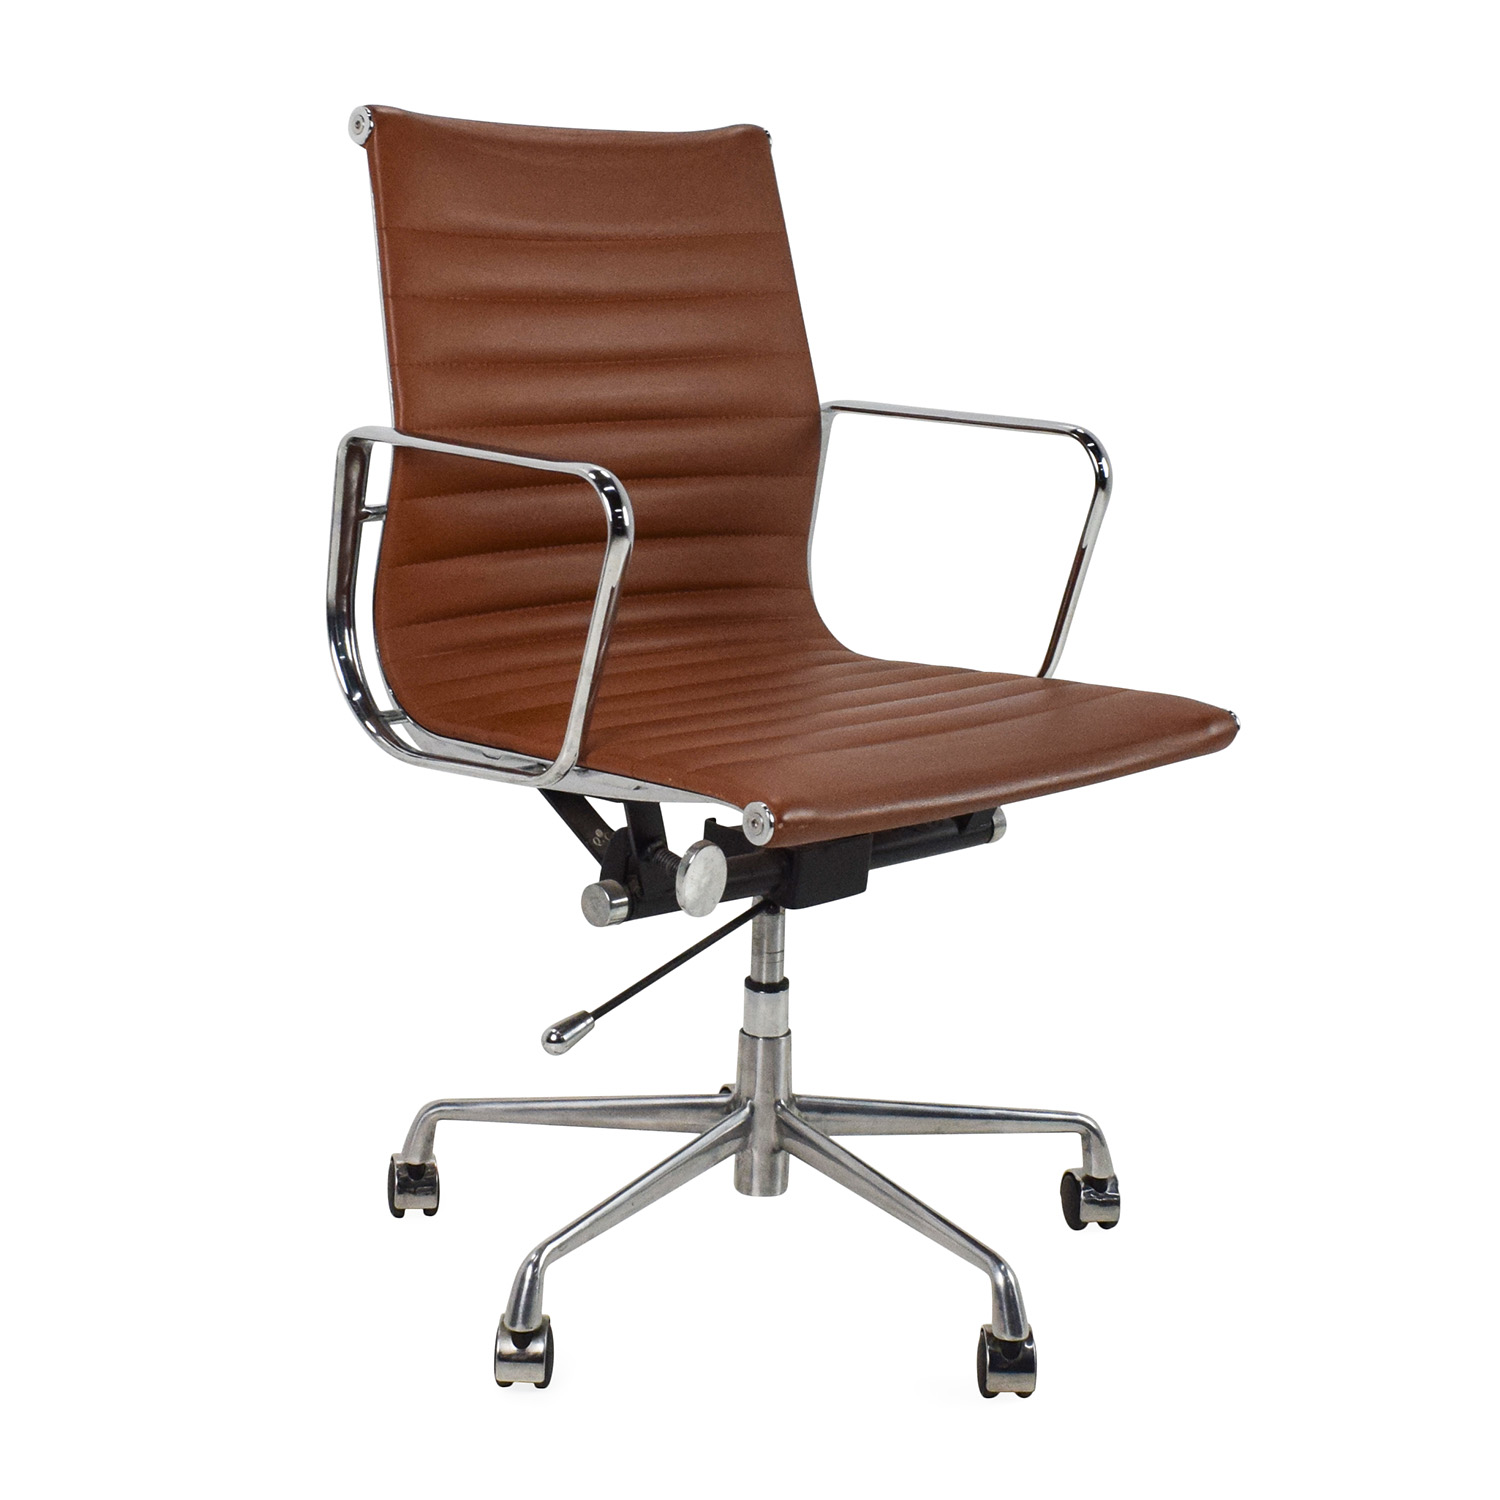 Chrome Office Chair Unknown Brand